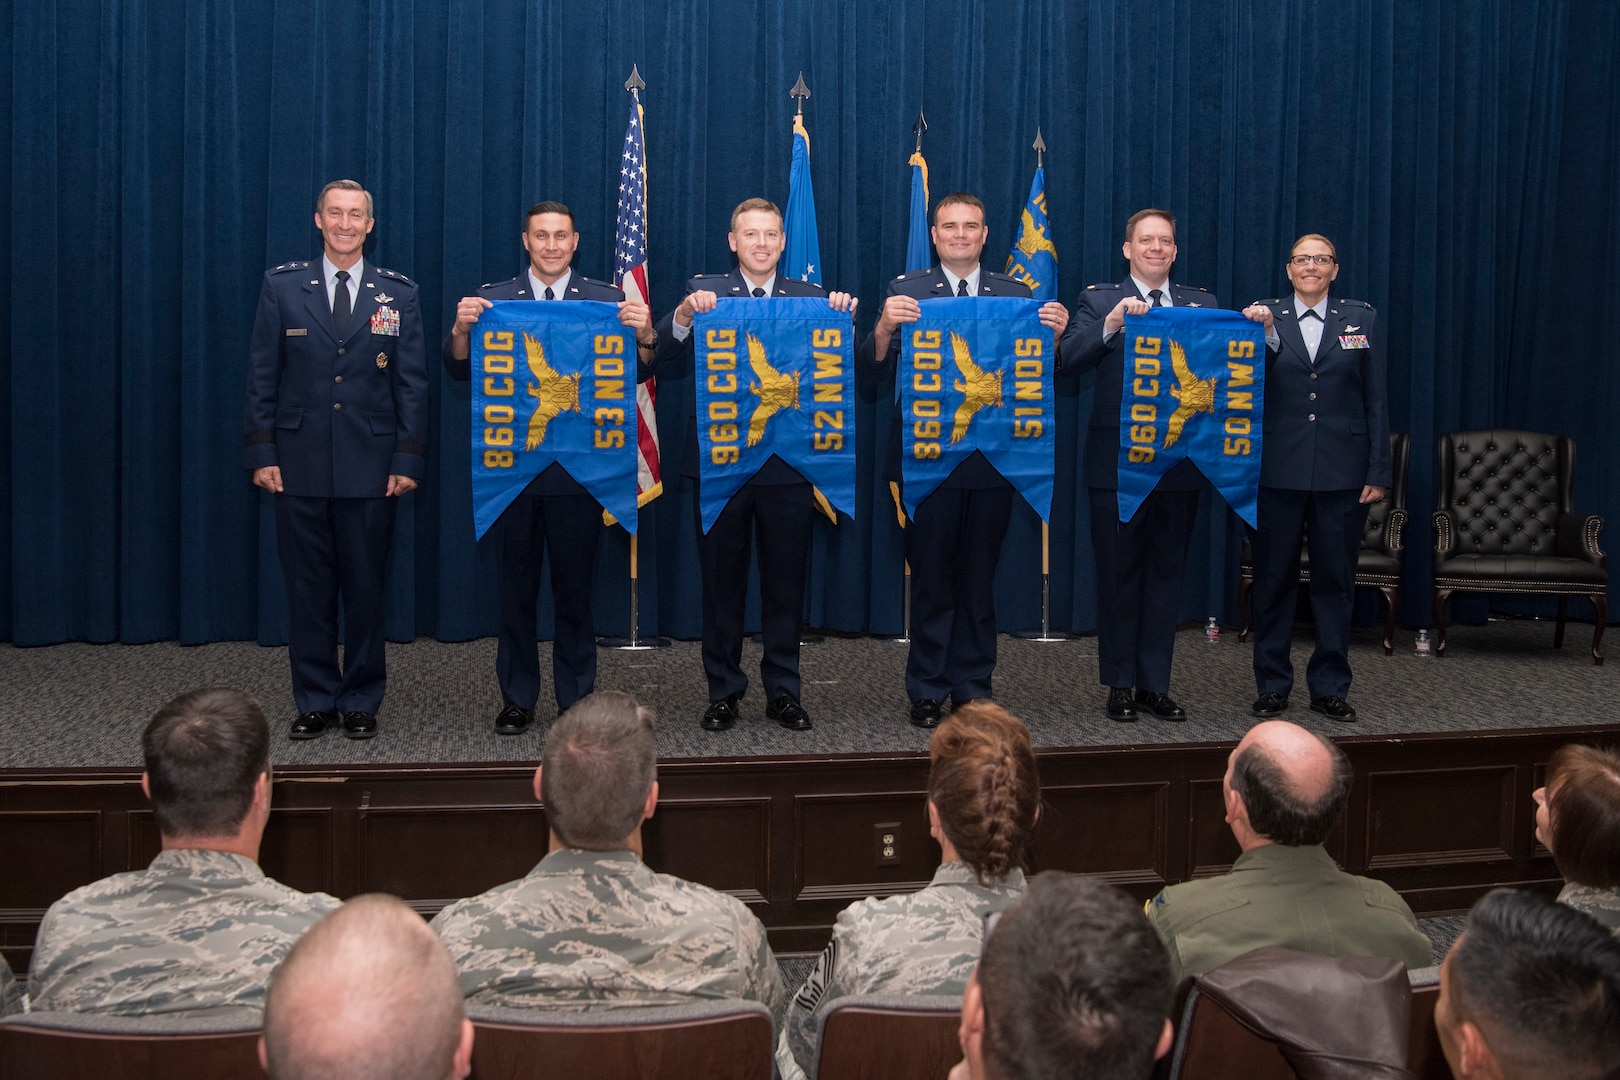 """The commanders of four of the six newly activated subordinate units of the 960th Cyberspace Wing unfurled thier unit flags and posed for a photo with Maj. Gen. Ronald """"Bruce"""" Miller, 10th Air Force commander, and Col. Lori Jones, the new 960th Cyberspace Wing commander."""